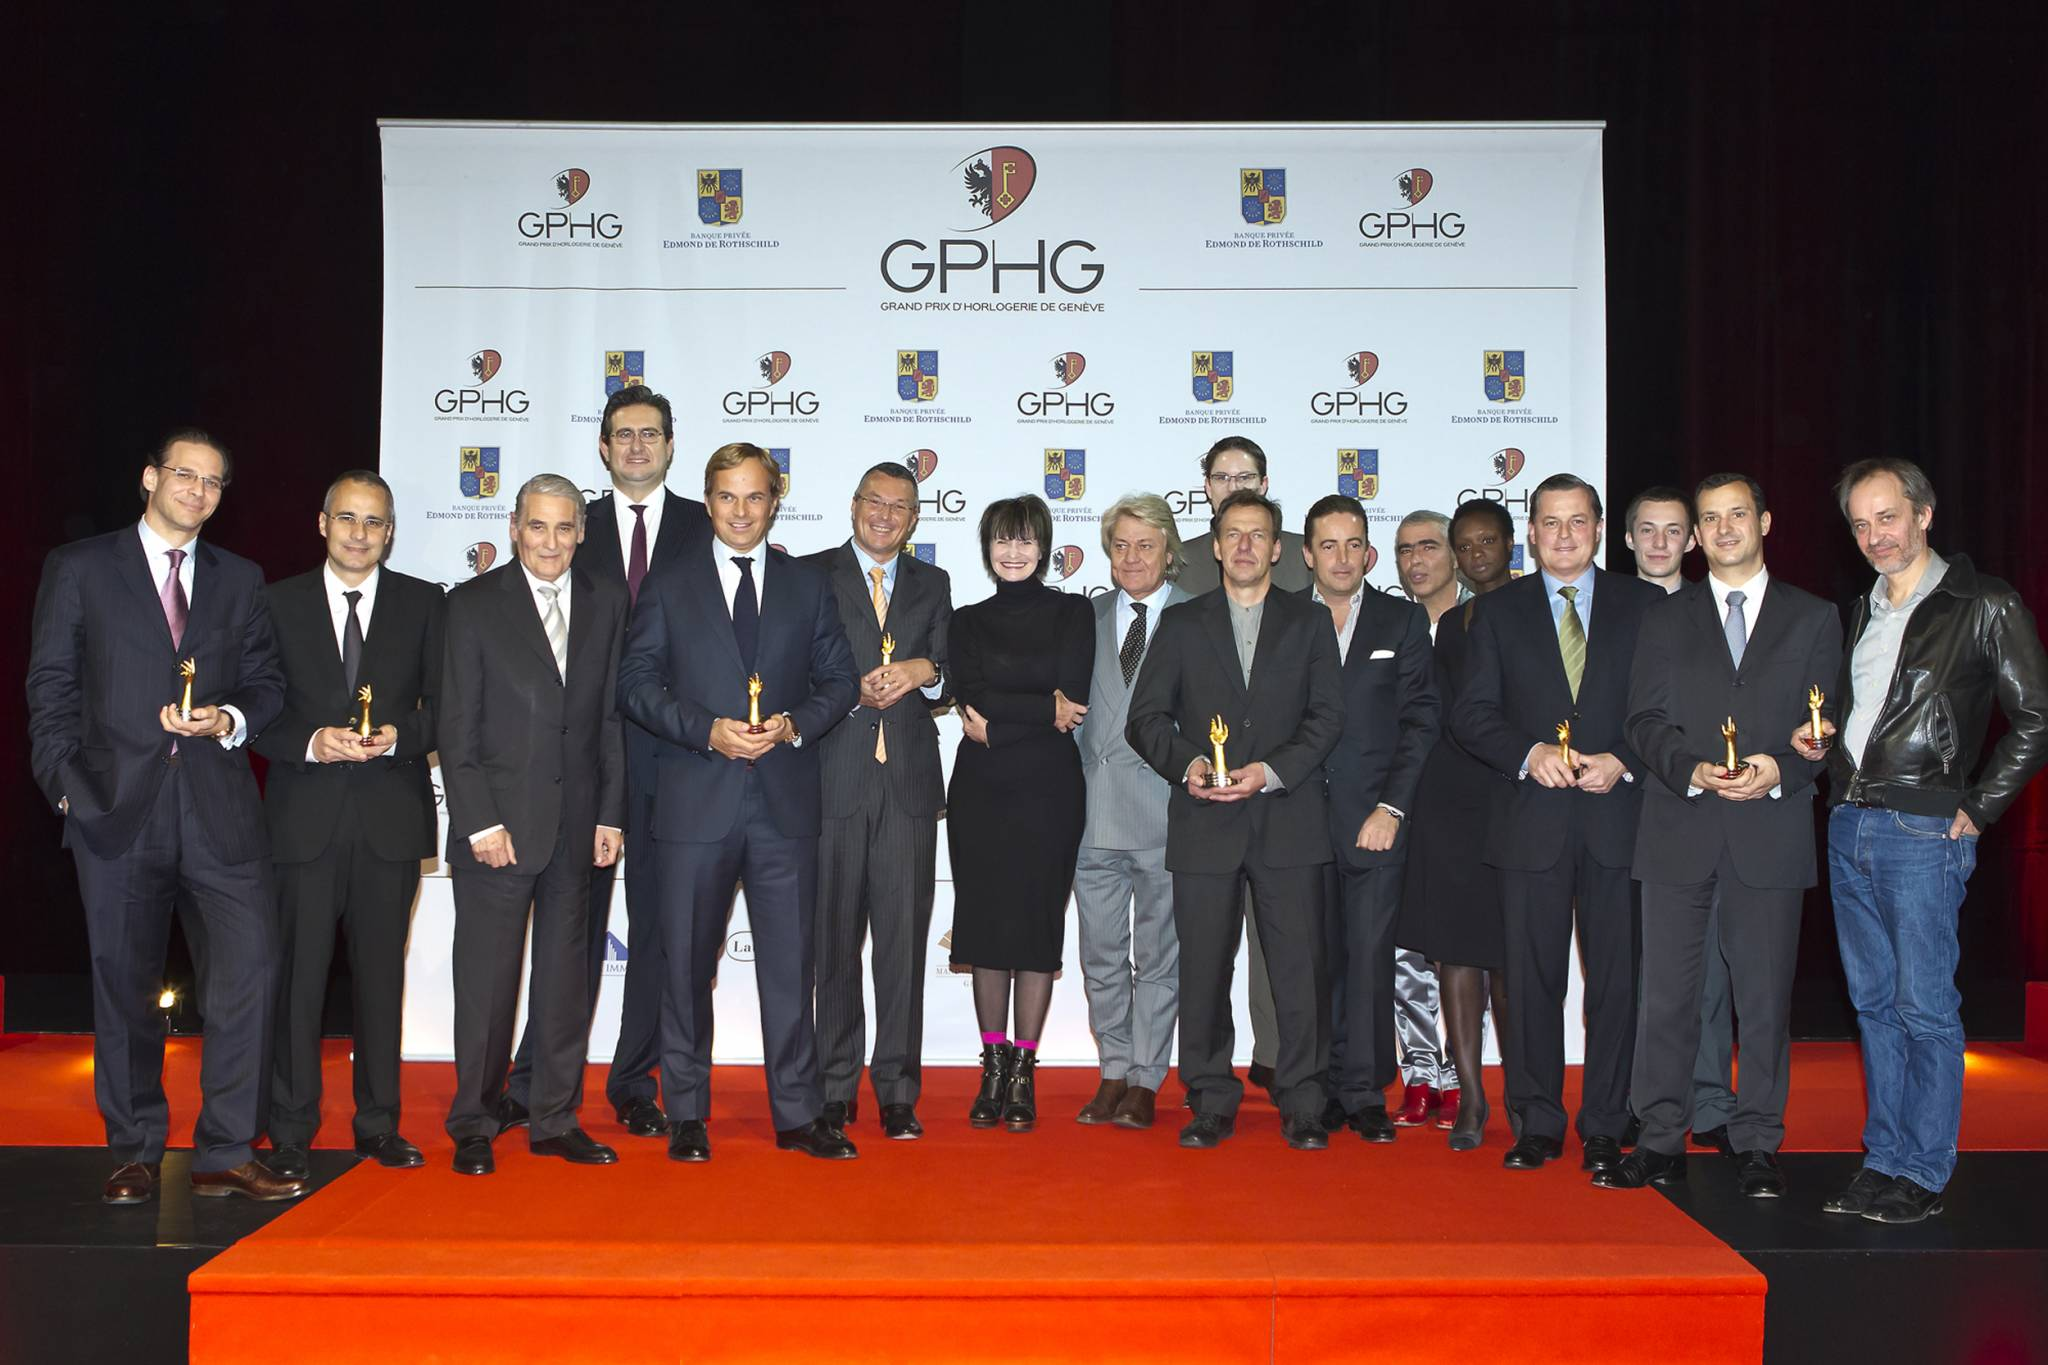 Alexander Schmiedt (Director of Watchmaking, MontBlanc), Jean-Christophe Sabatier (Director of Watchmaking, Boucheron), Carlo Lamprecht (President of the GPHG Foundation), Luc Perramond (CEO of TAG Heuer), Micheline Calmy-Rey (President of the Swiss Confederation), David Zanetta (Co-founder of De Bethune), Philippe Merk (CEO of Audemars Piguet), Eric de Rocquigny (Director of Métiers, Van Cleef & Arpels), Vianney Halter and at the back, wearing glasses: Cyrano Devanthey (engineer-constructor at Urwerk), November 19th, 2011